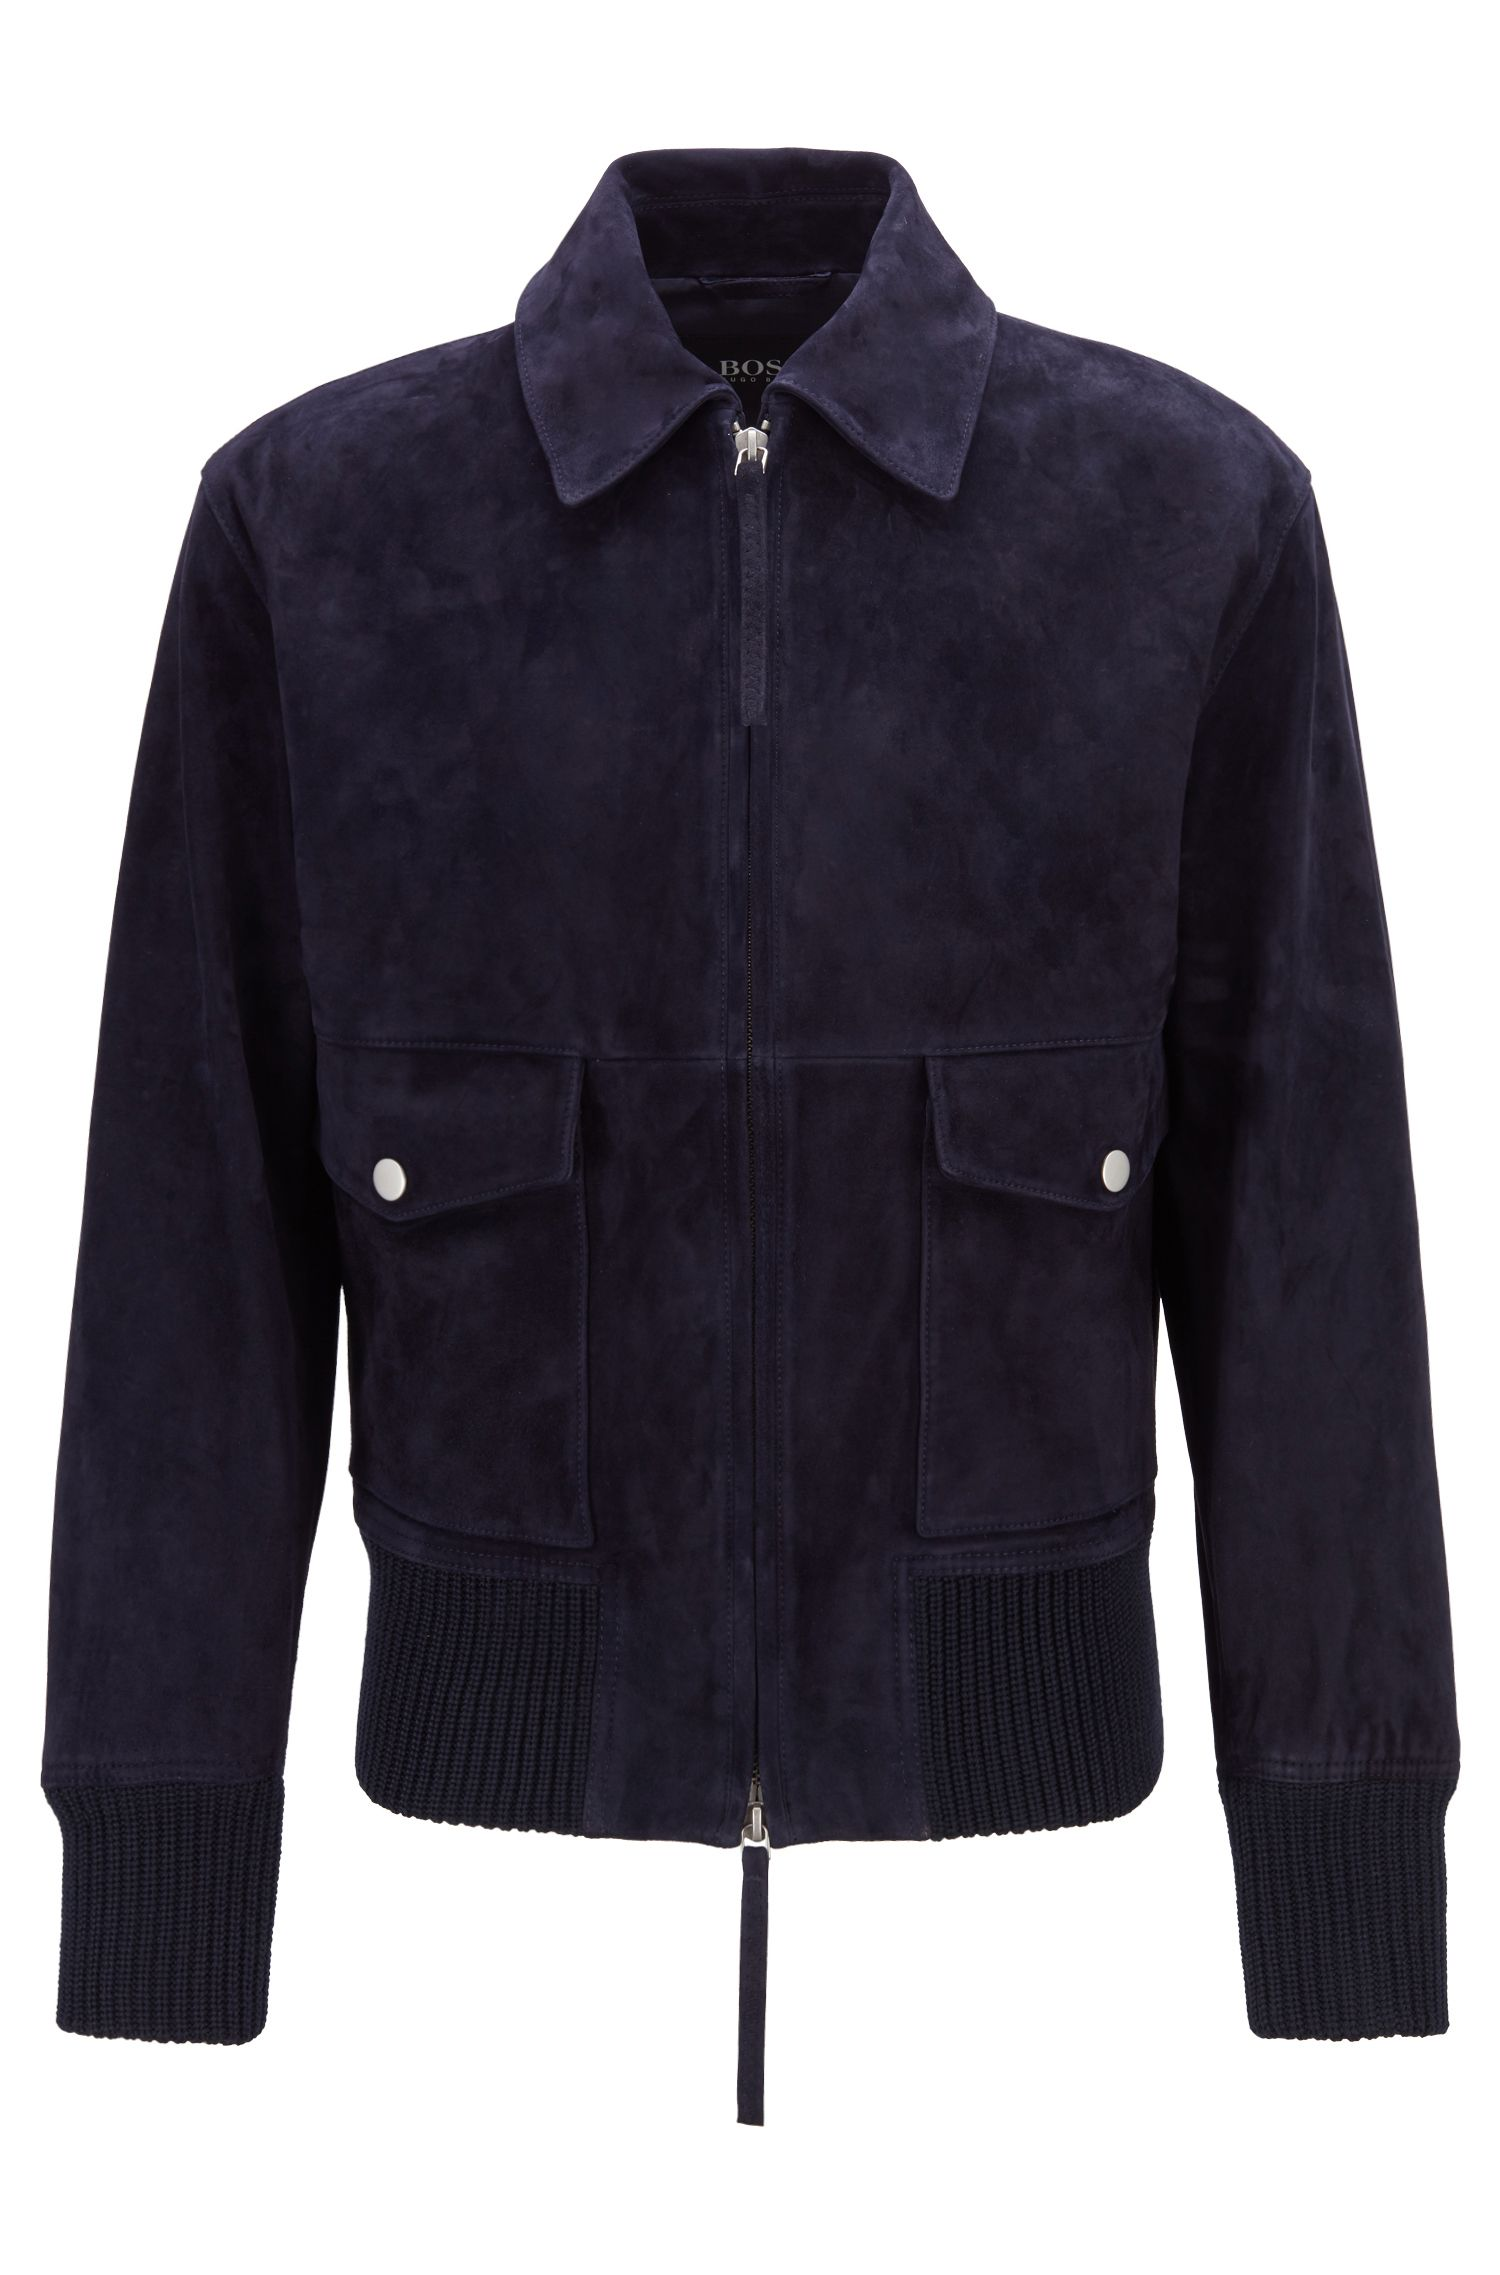 Fashion Show Harrington-Jacke aus weichem Veloursleder, Dunkelblau